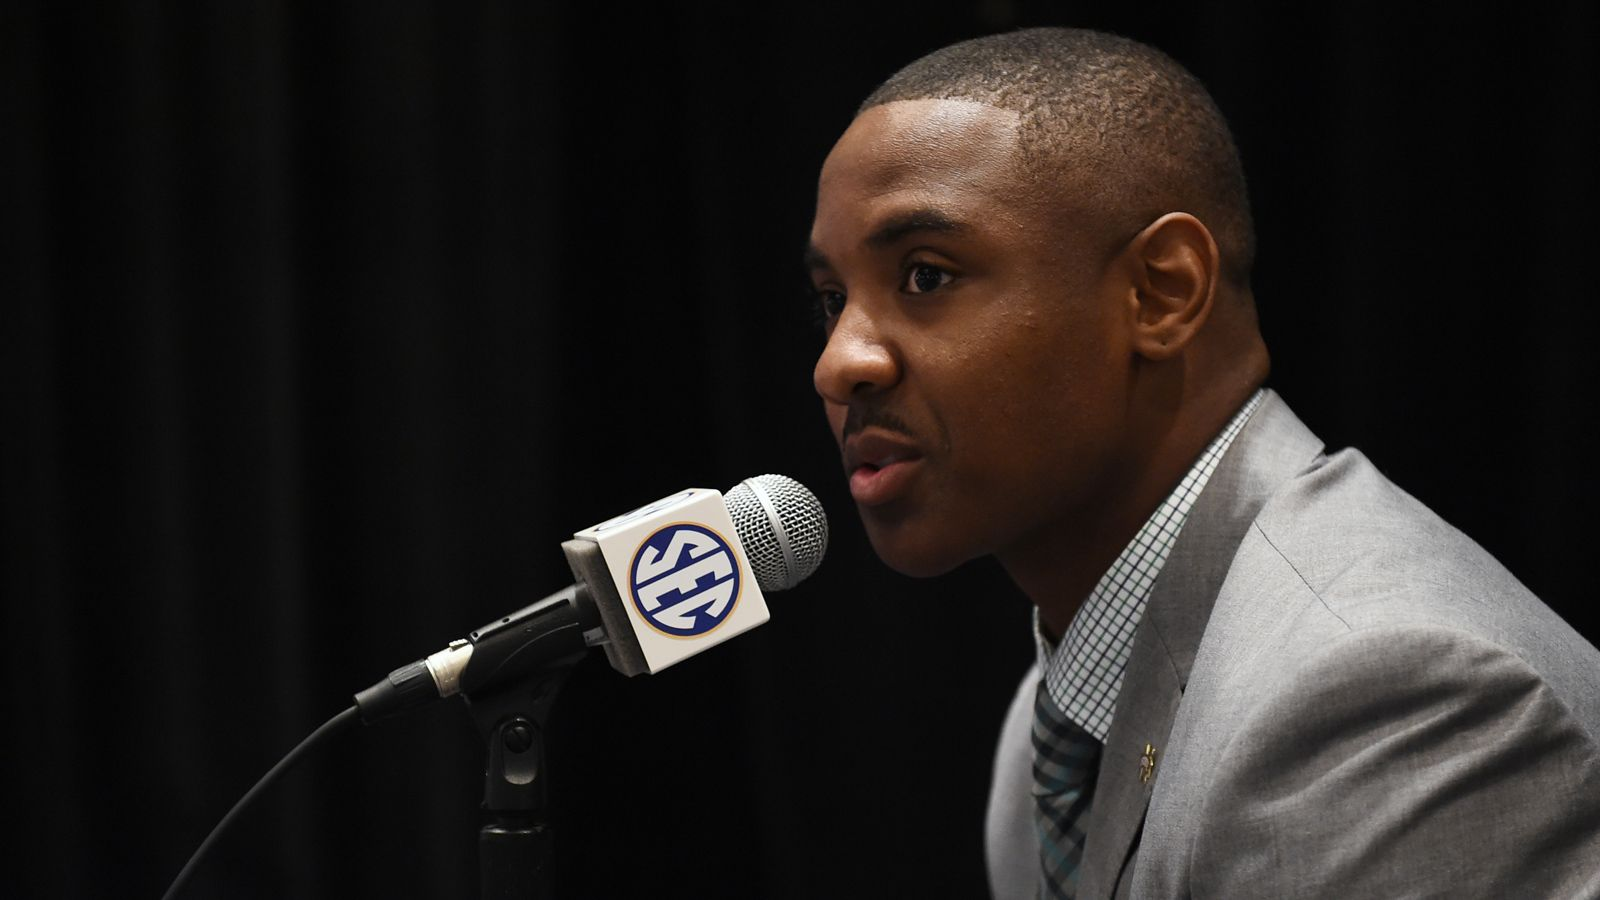 MSU's Jay Hughes shares stories from NCAA convention